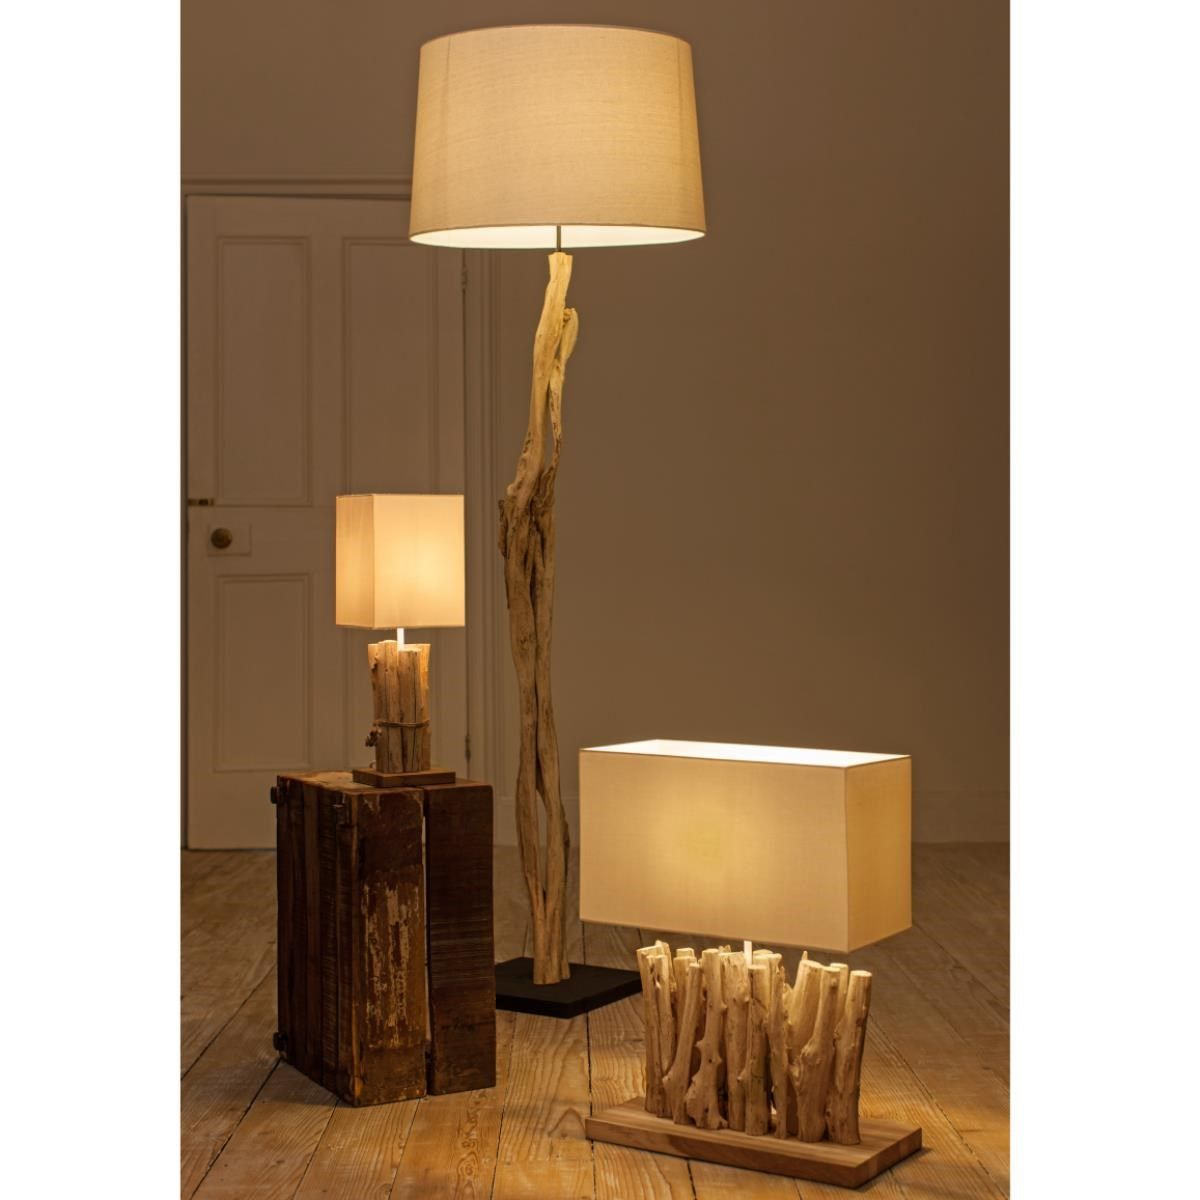 floor driftwood product garden overstock shipping home lamp today free